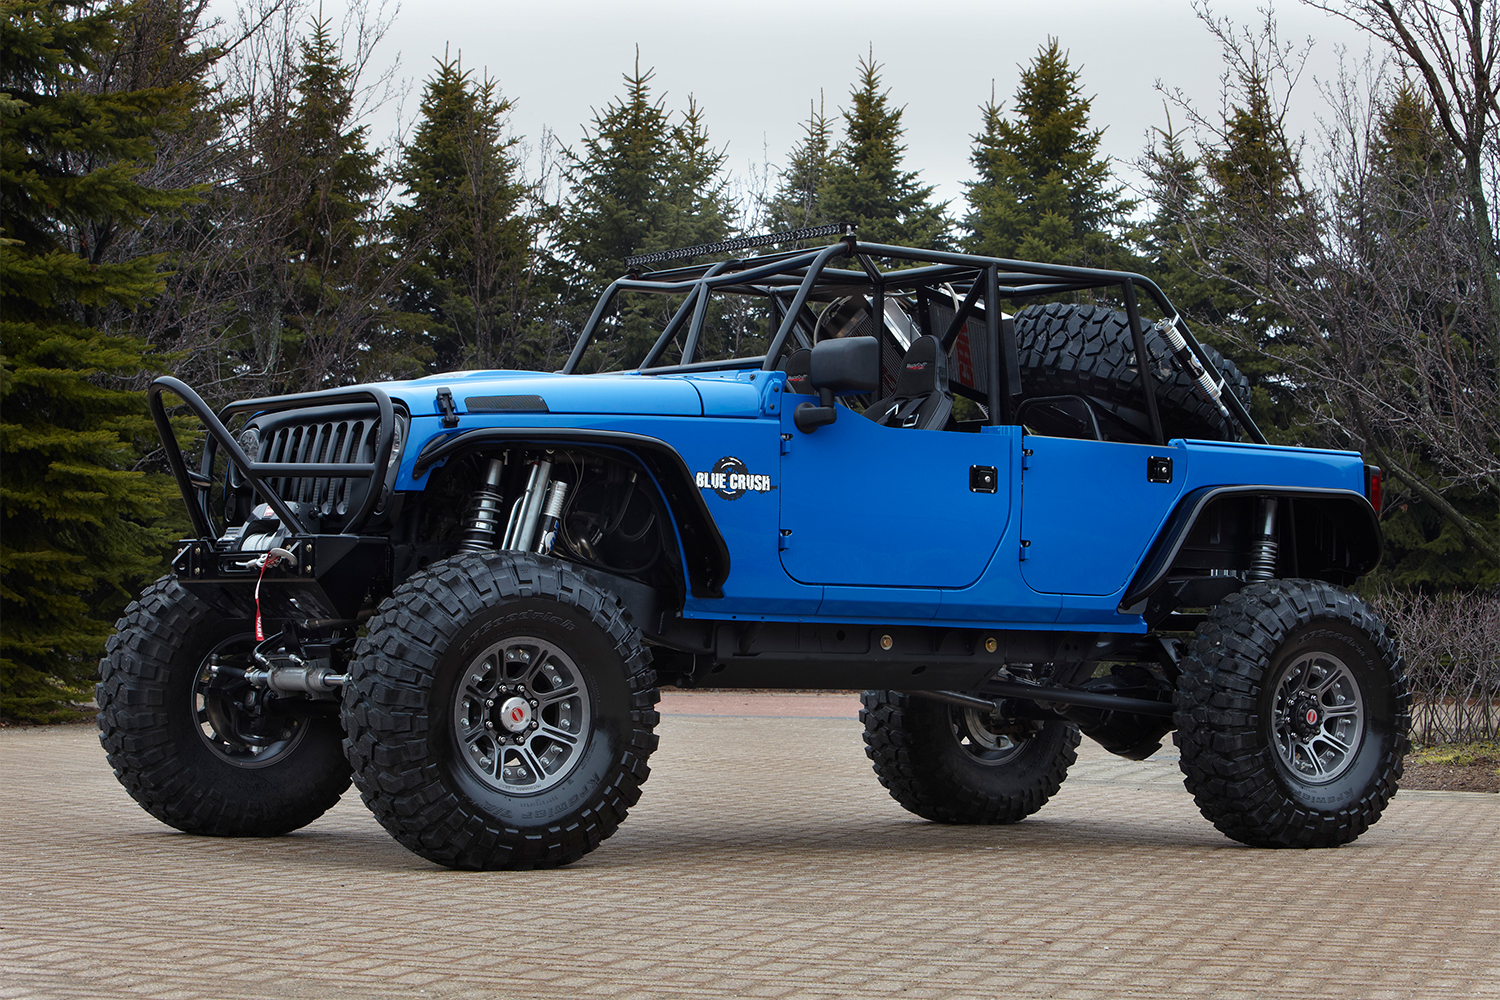 A blue Jeep Wrangler with a suspension lift and no roof